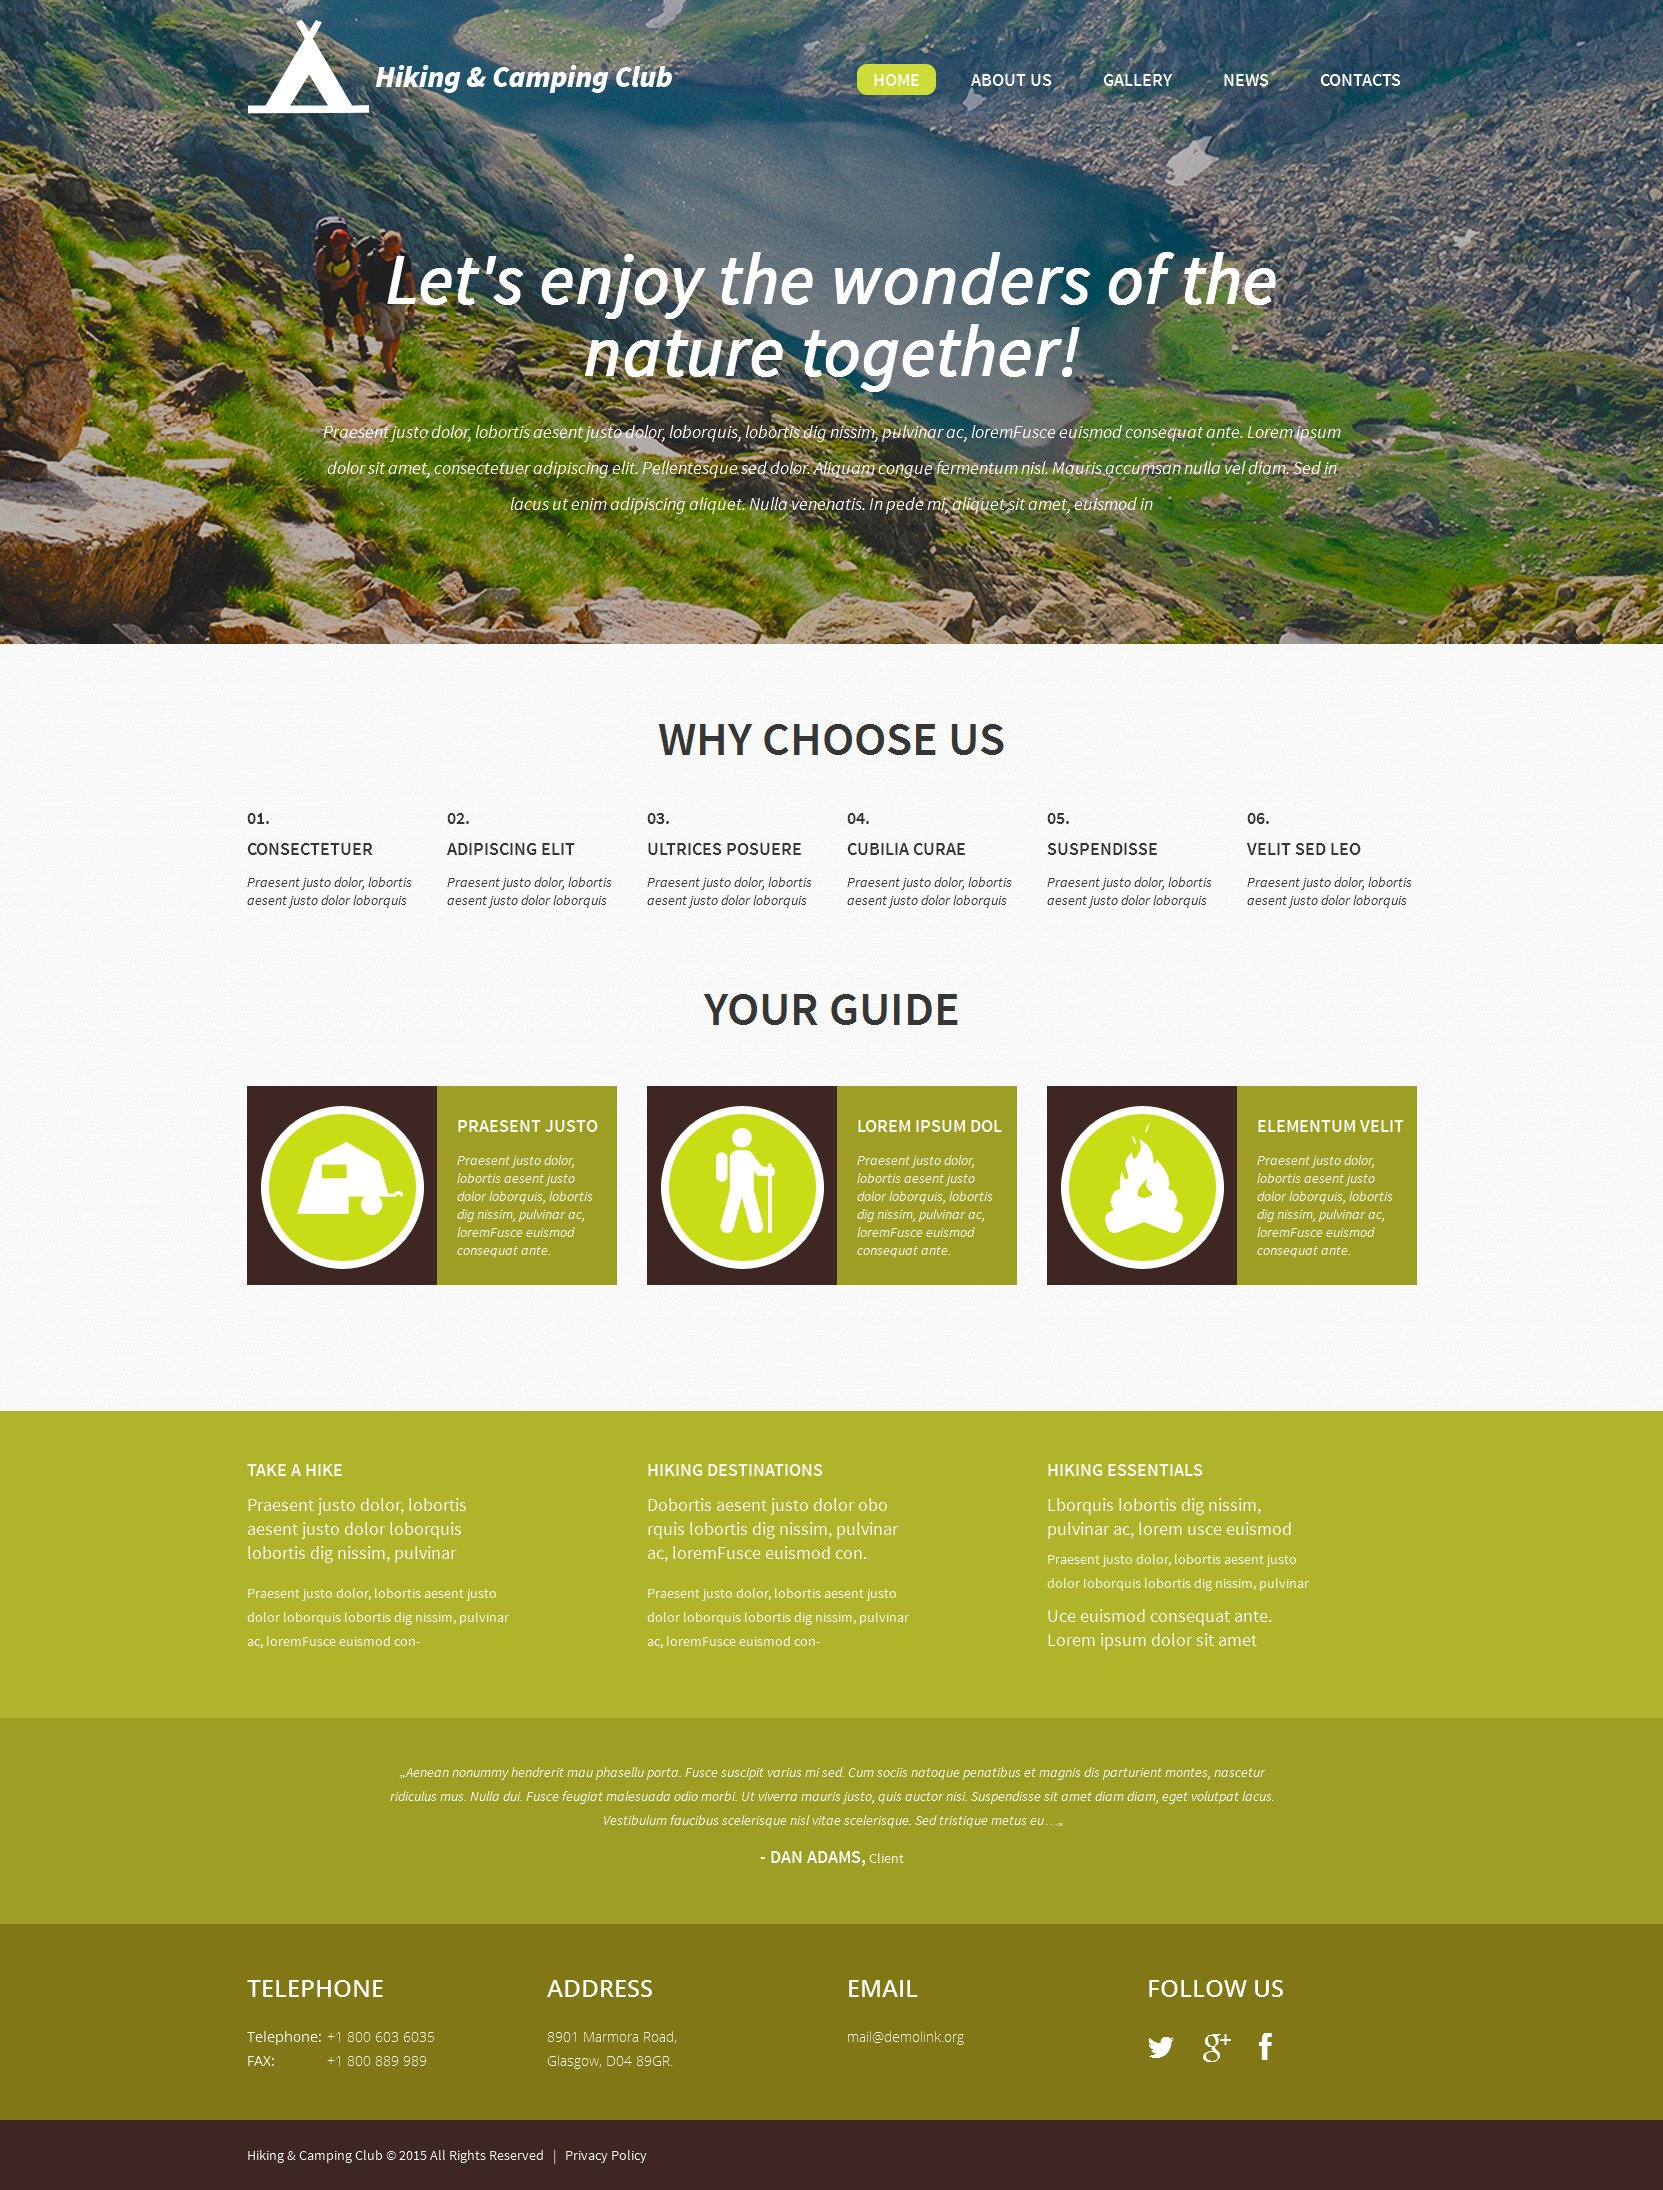 The Hiking Camper WordPress Design 53298, one of the best WordPress themes of its kind (travel, most popular), also known as hiking camper WordPress template, camping WordPress template, tourism WordPress template, equipment WordPress template, tents WordPress template, campers WordPress template, motorhome WordPress template, hire WordPress template, western WordPress template, lakes WordPress template, mountains WordPress template, mid WordPress template, coast WordPress template, down WordPress template, east WordPress template, sunrise WordPress template, country WordPress template, tourists WordPress template, guide WordPress template, tips WordPress template, regions WordPress template, destination WordPress template, map WordPress template, compass WordPress template, info WordPress template, statewide WordPress template, activity WordPress template, gallery WordPress template, location WordPress template, relaxation WordPress template, recreation WordPress template, impression WordPress template, vacatio and related with hiking camper, camping, tourism, equipment, tents, campers, motorhome, hire, western, lakes, mountains, mid, coast, down, east, sunrise, country, tourists, guide, tips, regions, destination, map, compass, info, statewide, activity, gallery, location, relaxation, recreation, impression, vacatio, etc.